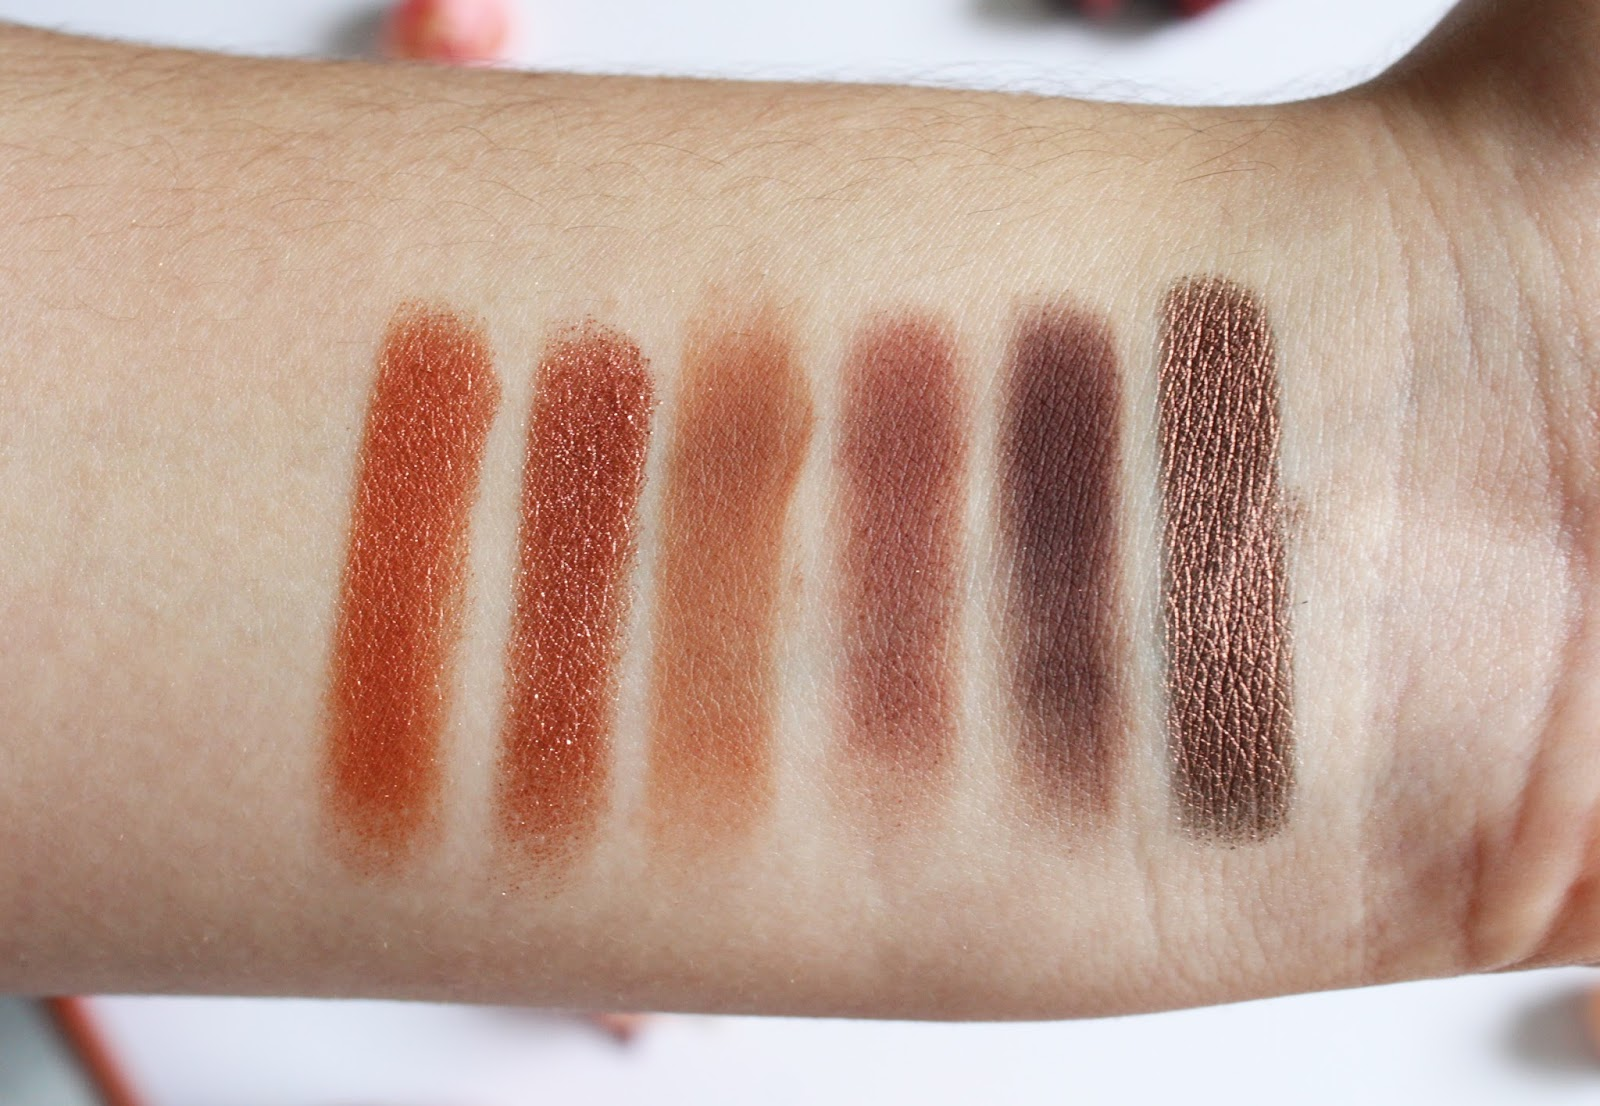 Urban Decay Naked Heat Palette Review & Swatches